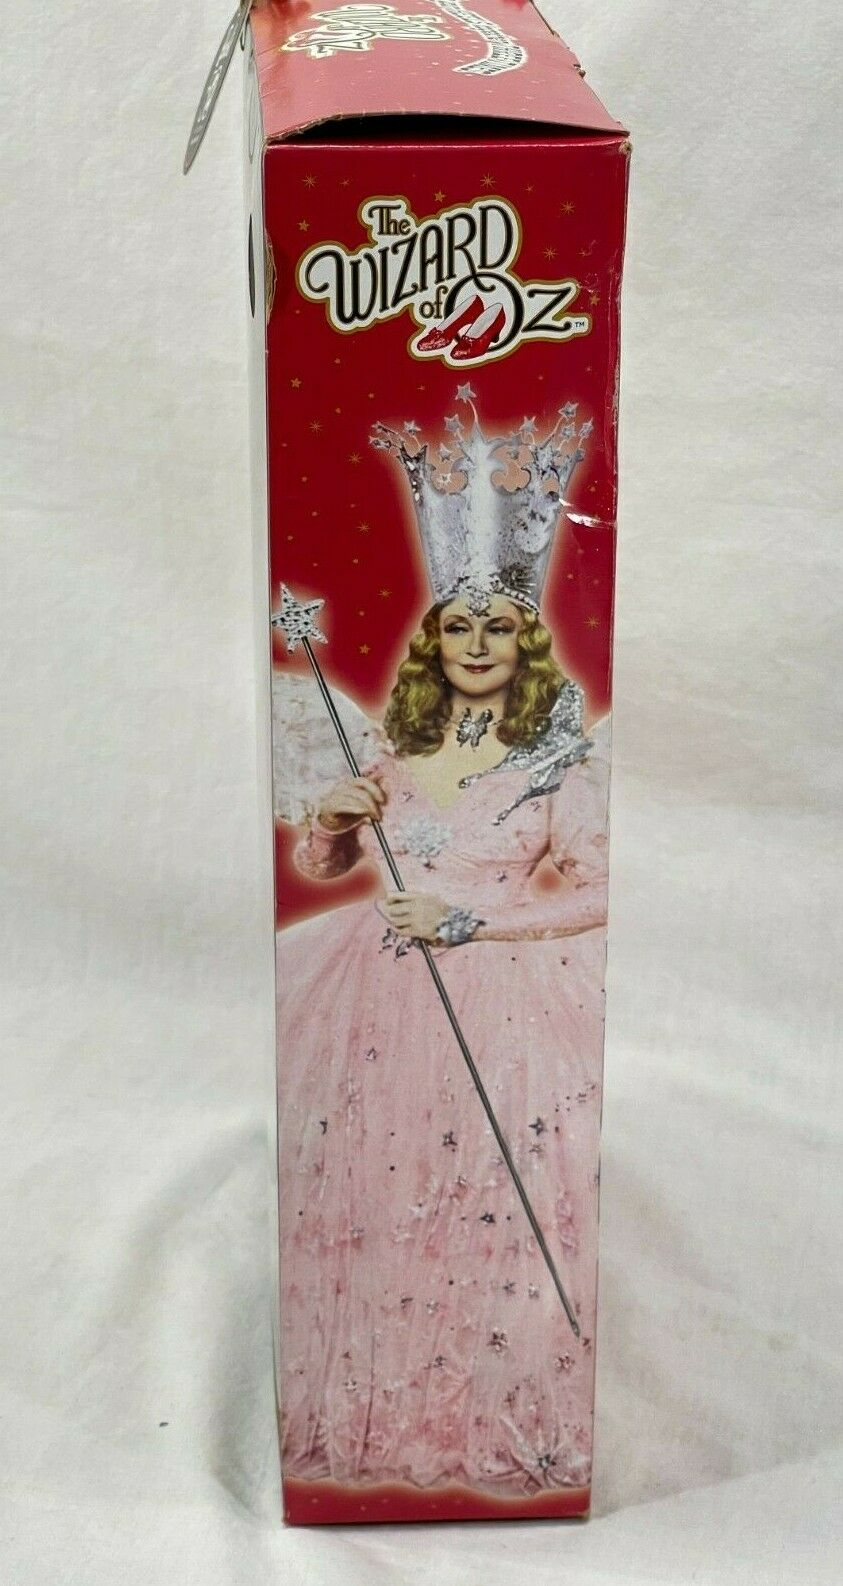 Wizard Of Oz Glinda The Good Witch 2008 Barbie Pink Label 50th Musical N6560 - $189.99